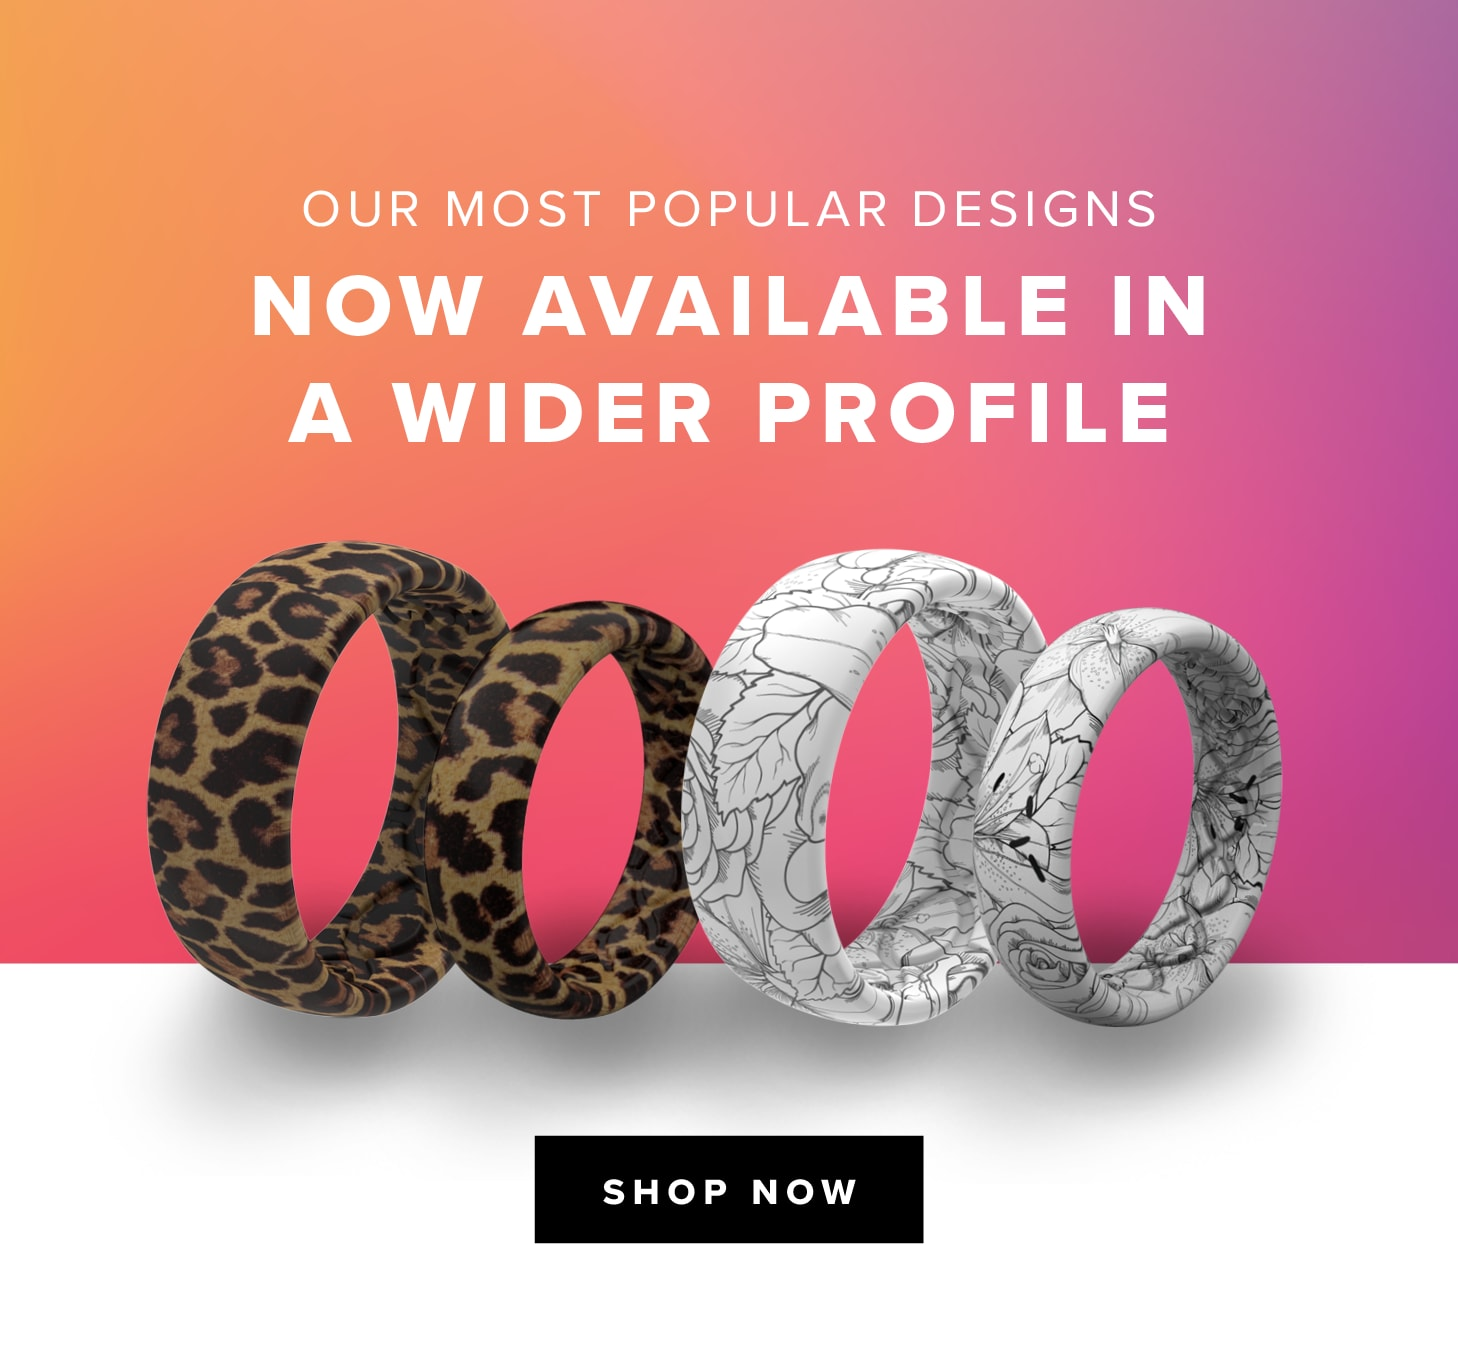 Our Most Popular Designs, Now Available in a Wider Profile